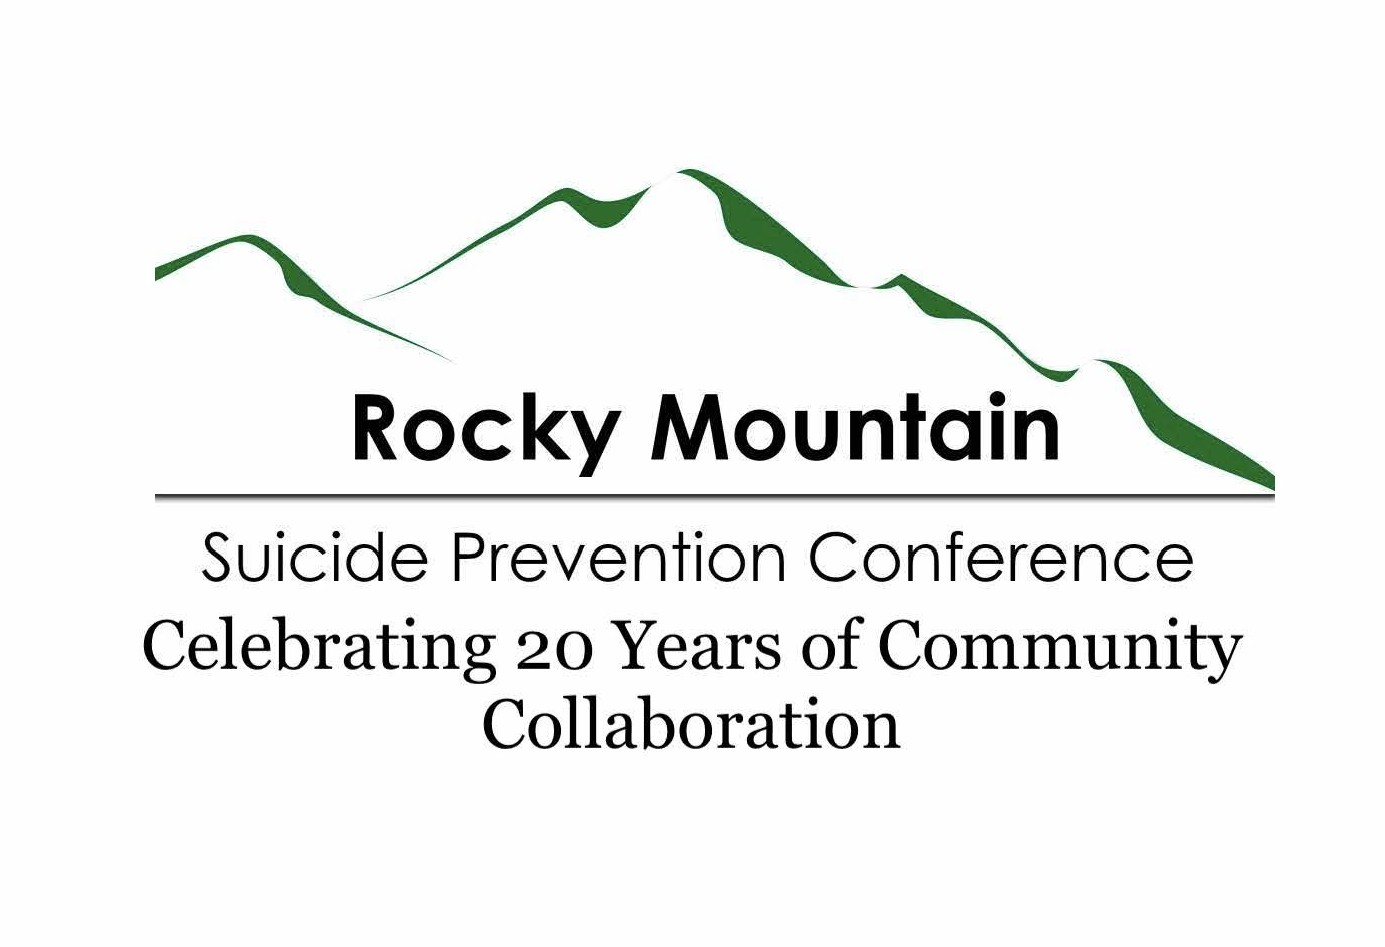 Rocky Mountain Suicide Prevention Conference